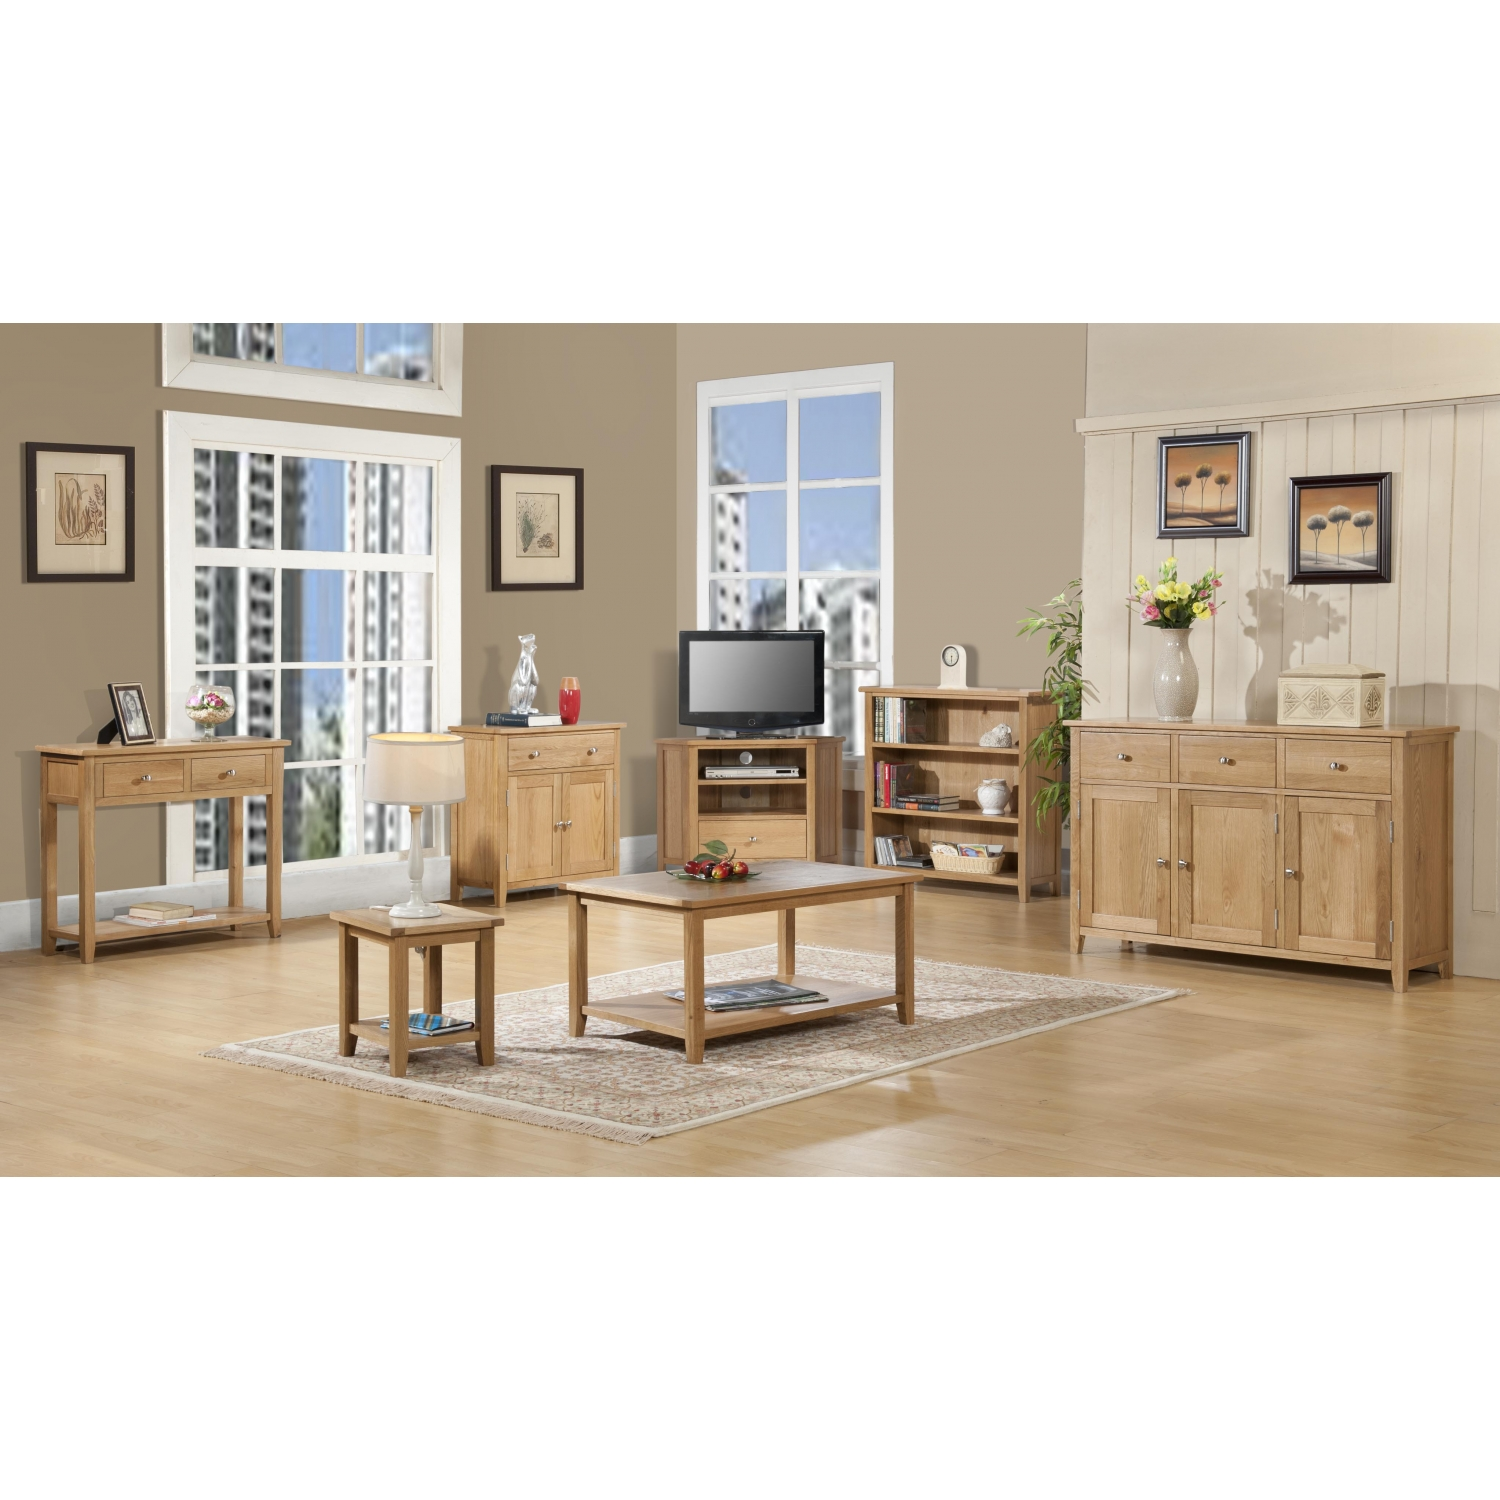 easton oak living room furniture corner tv cabinet stand unit ebay. Black Bedroom Furniture Sets. Home Design Ideas